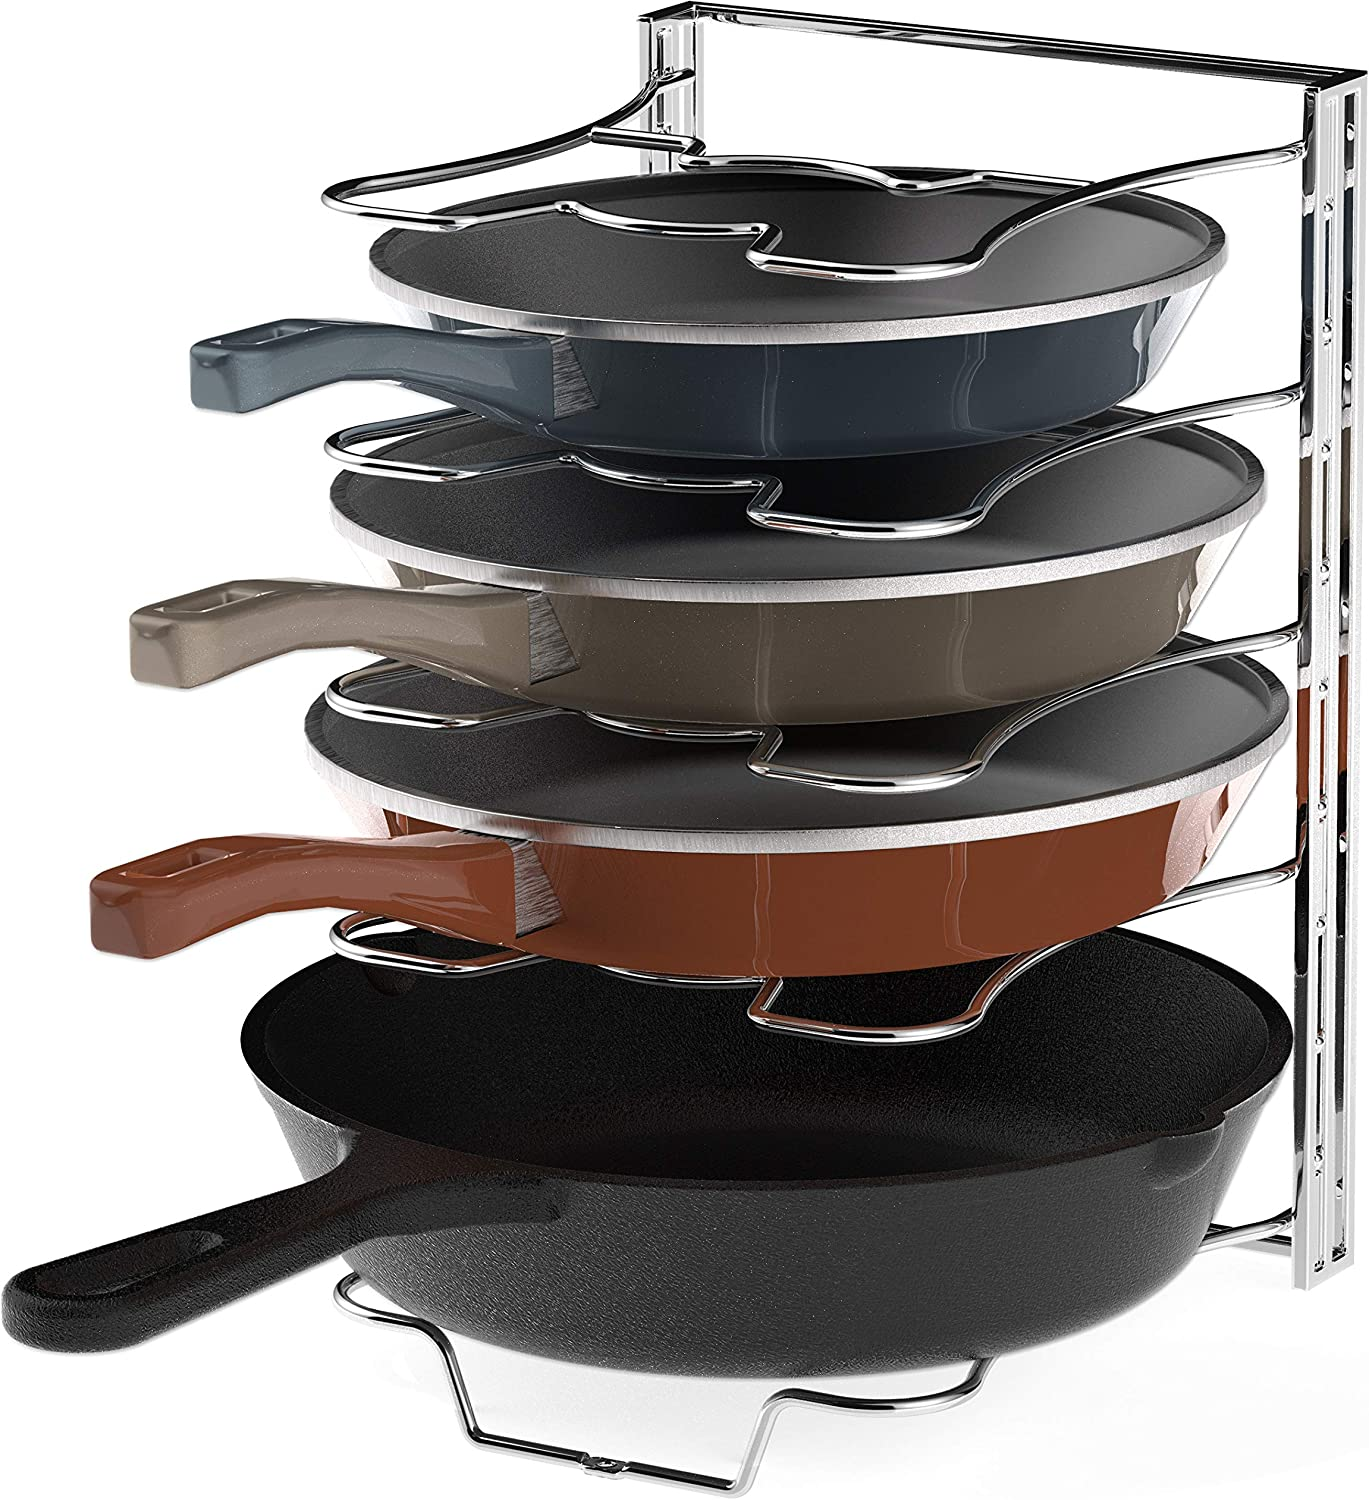 Simple Houseware Kitchen Cabinet 5 Adjustable Compartments Pan and Pot Lid Organizer Rack Holder, Chrome: Home & Kitchen